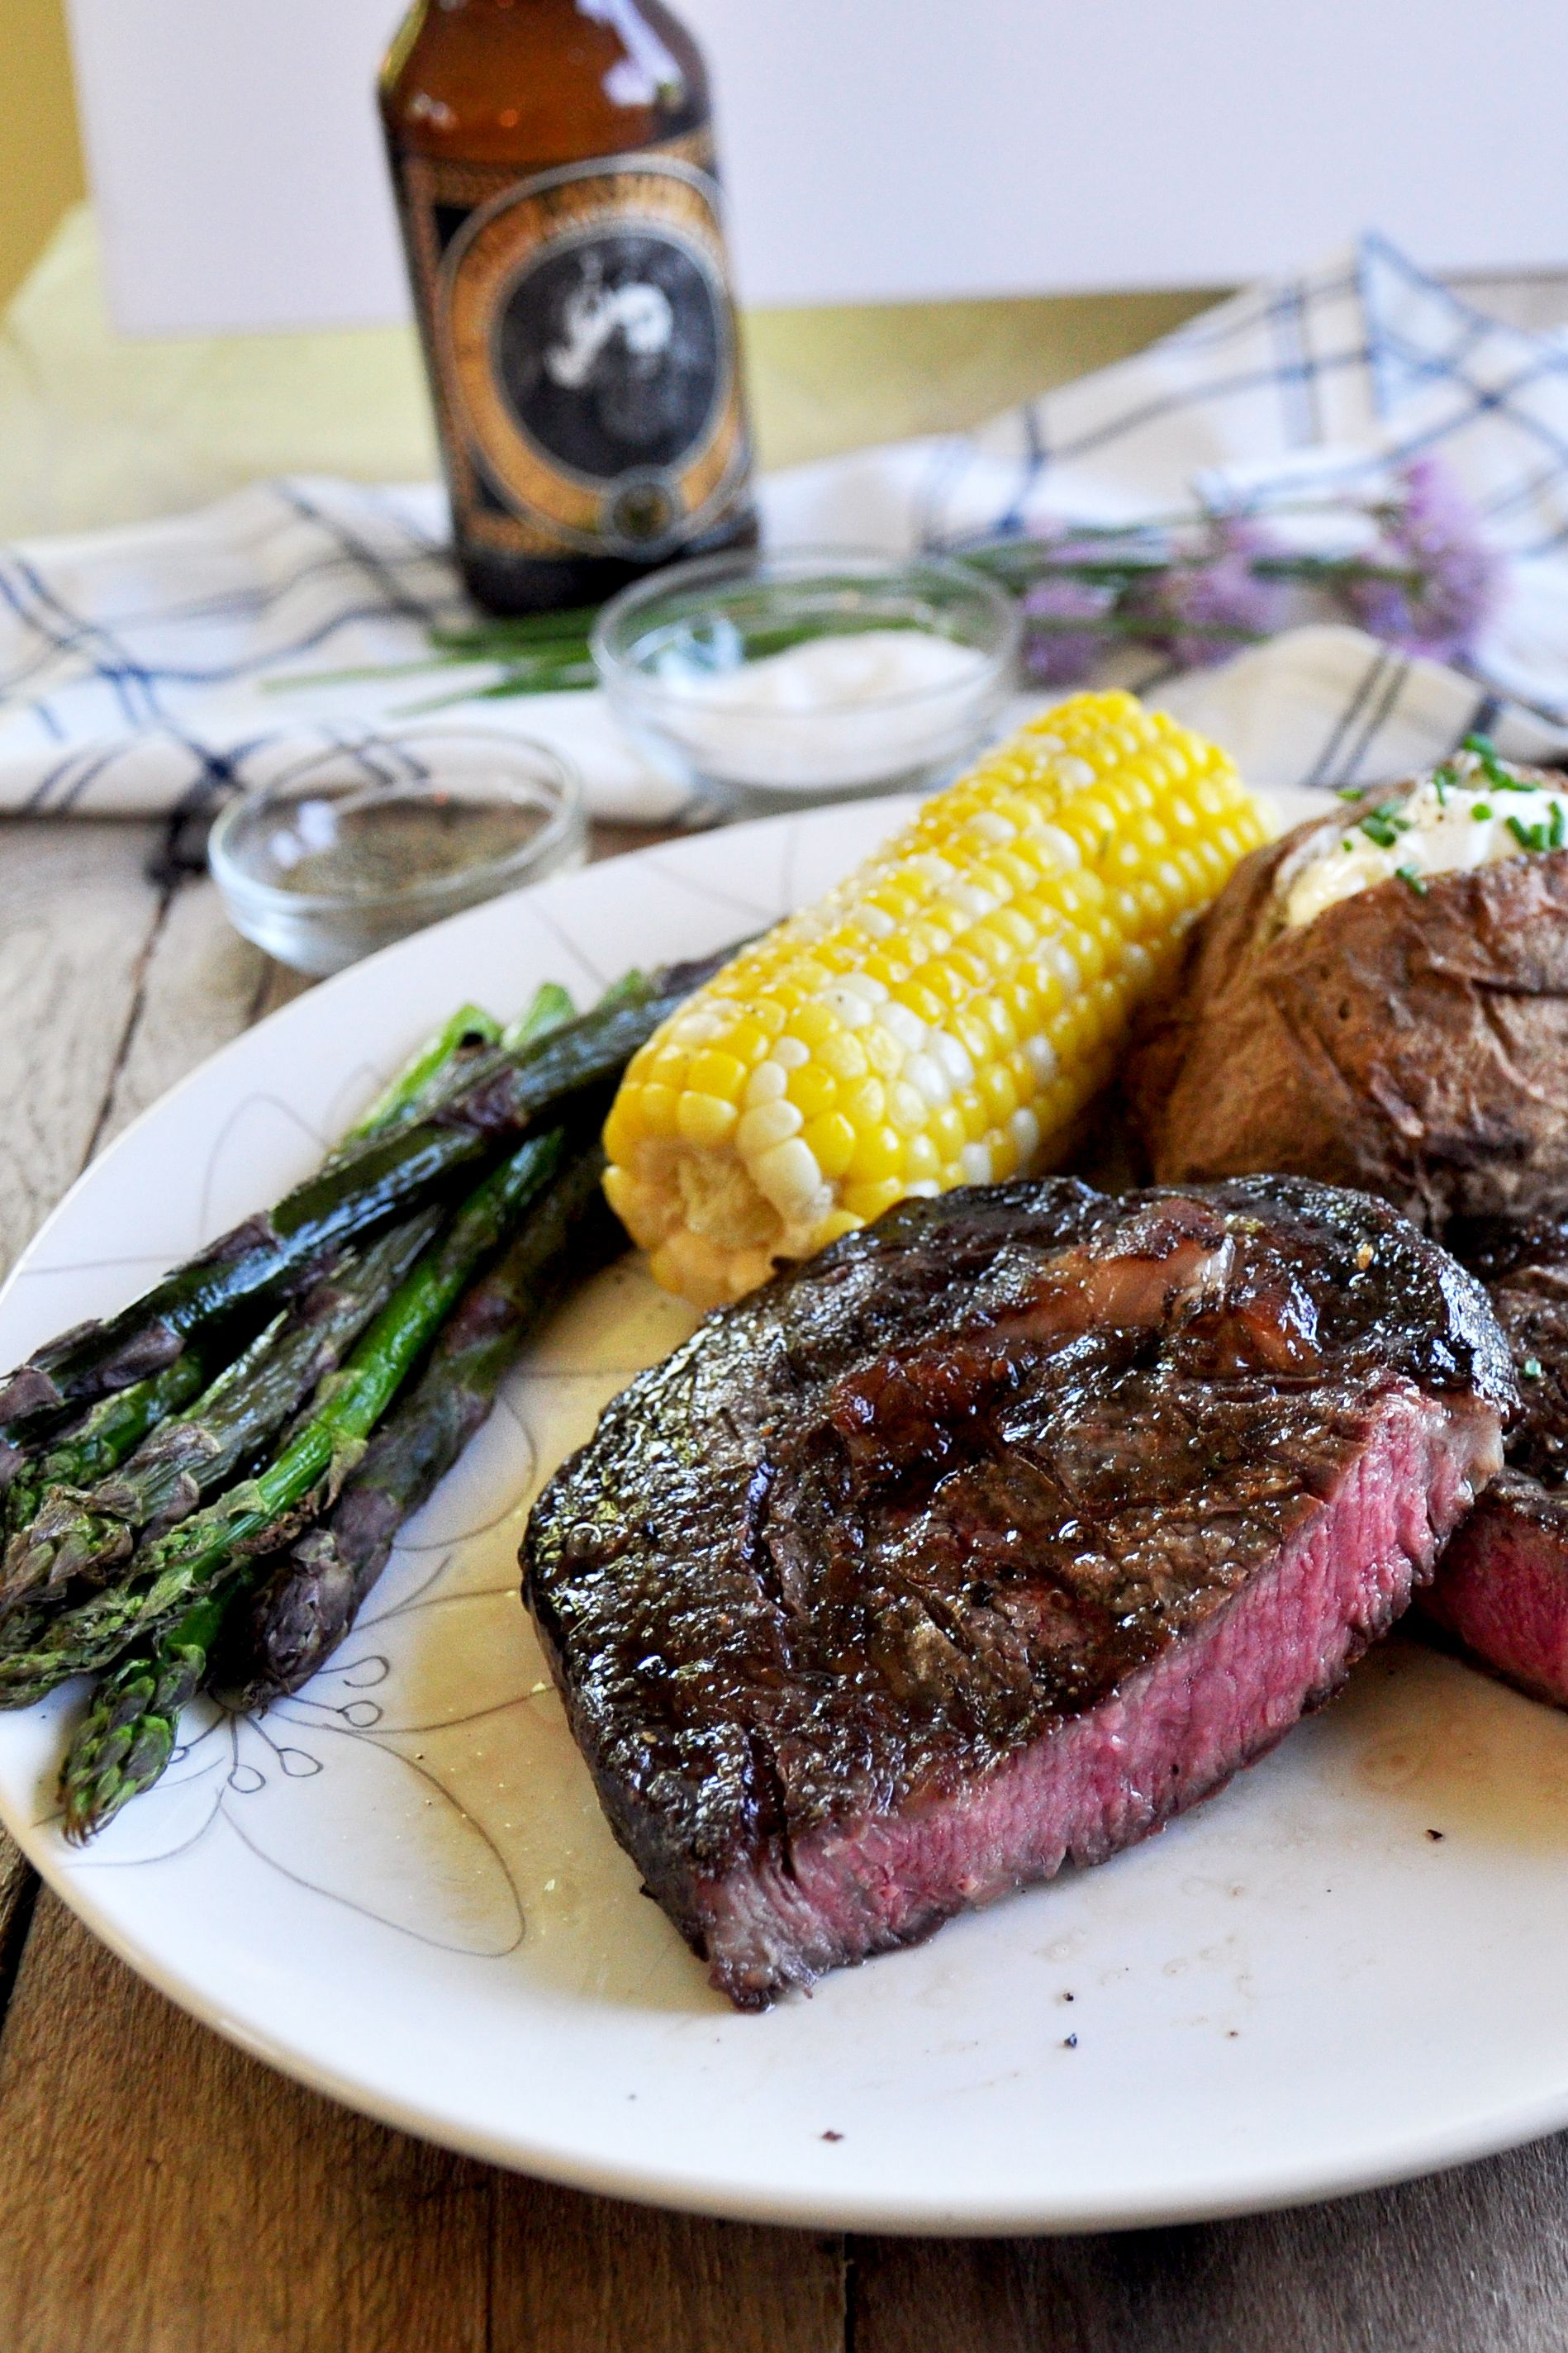 What Better Way To Surprise Dad Than With An Awesome Steak Get The Low Down On Making A Great St How To Grill Steak Grilled Meat Recipes Grilled Steak Recipes